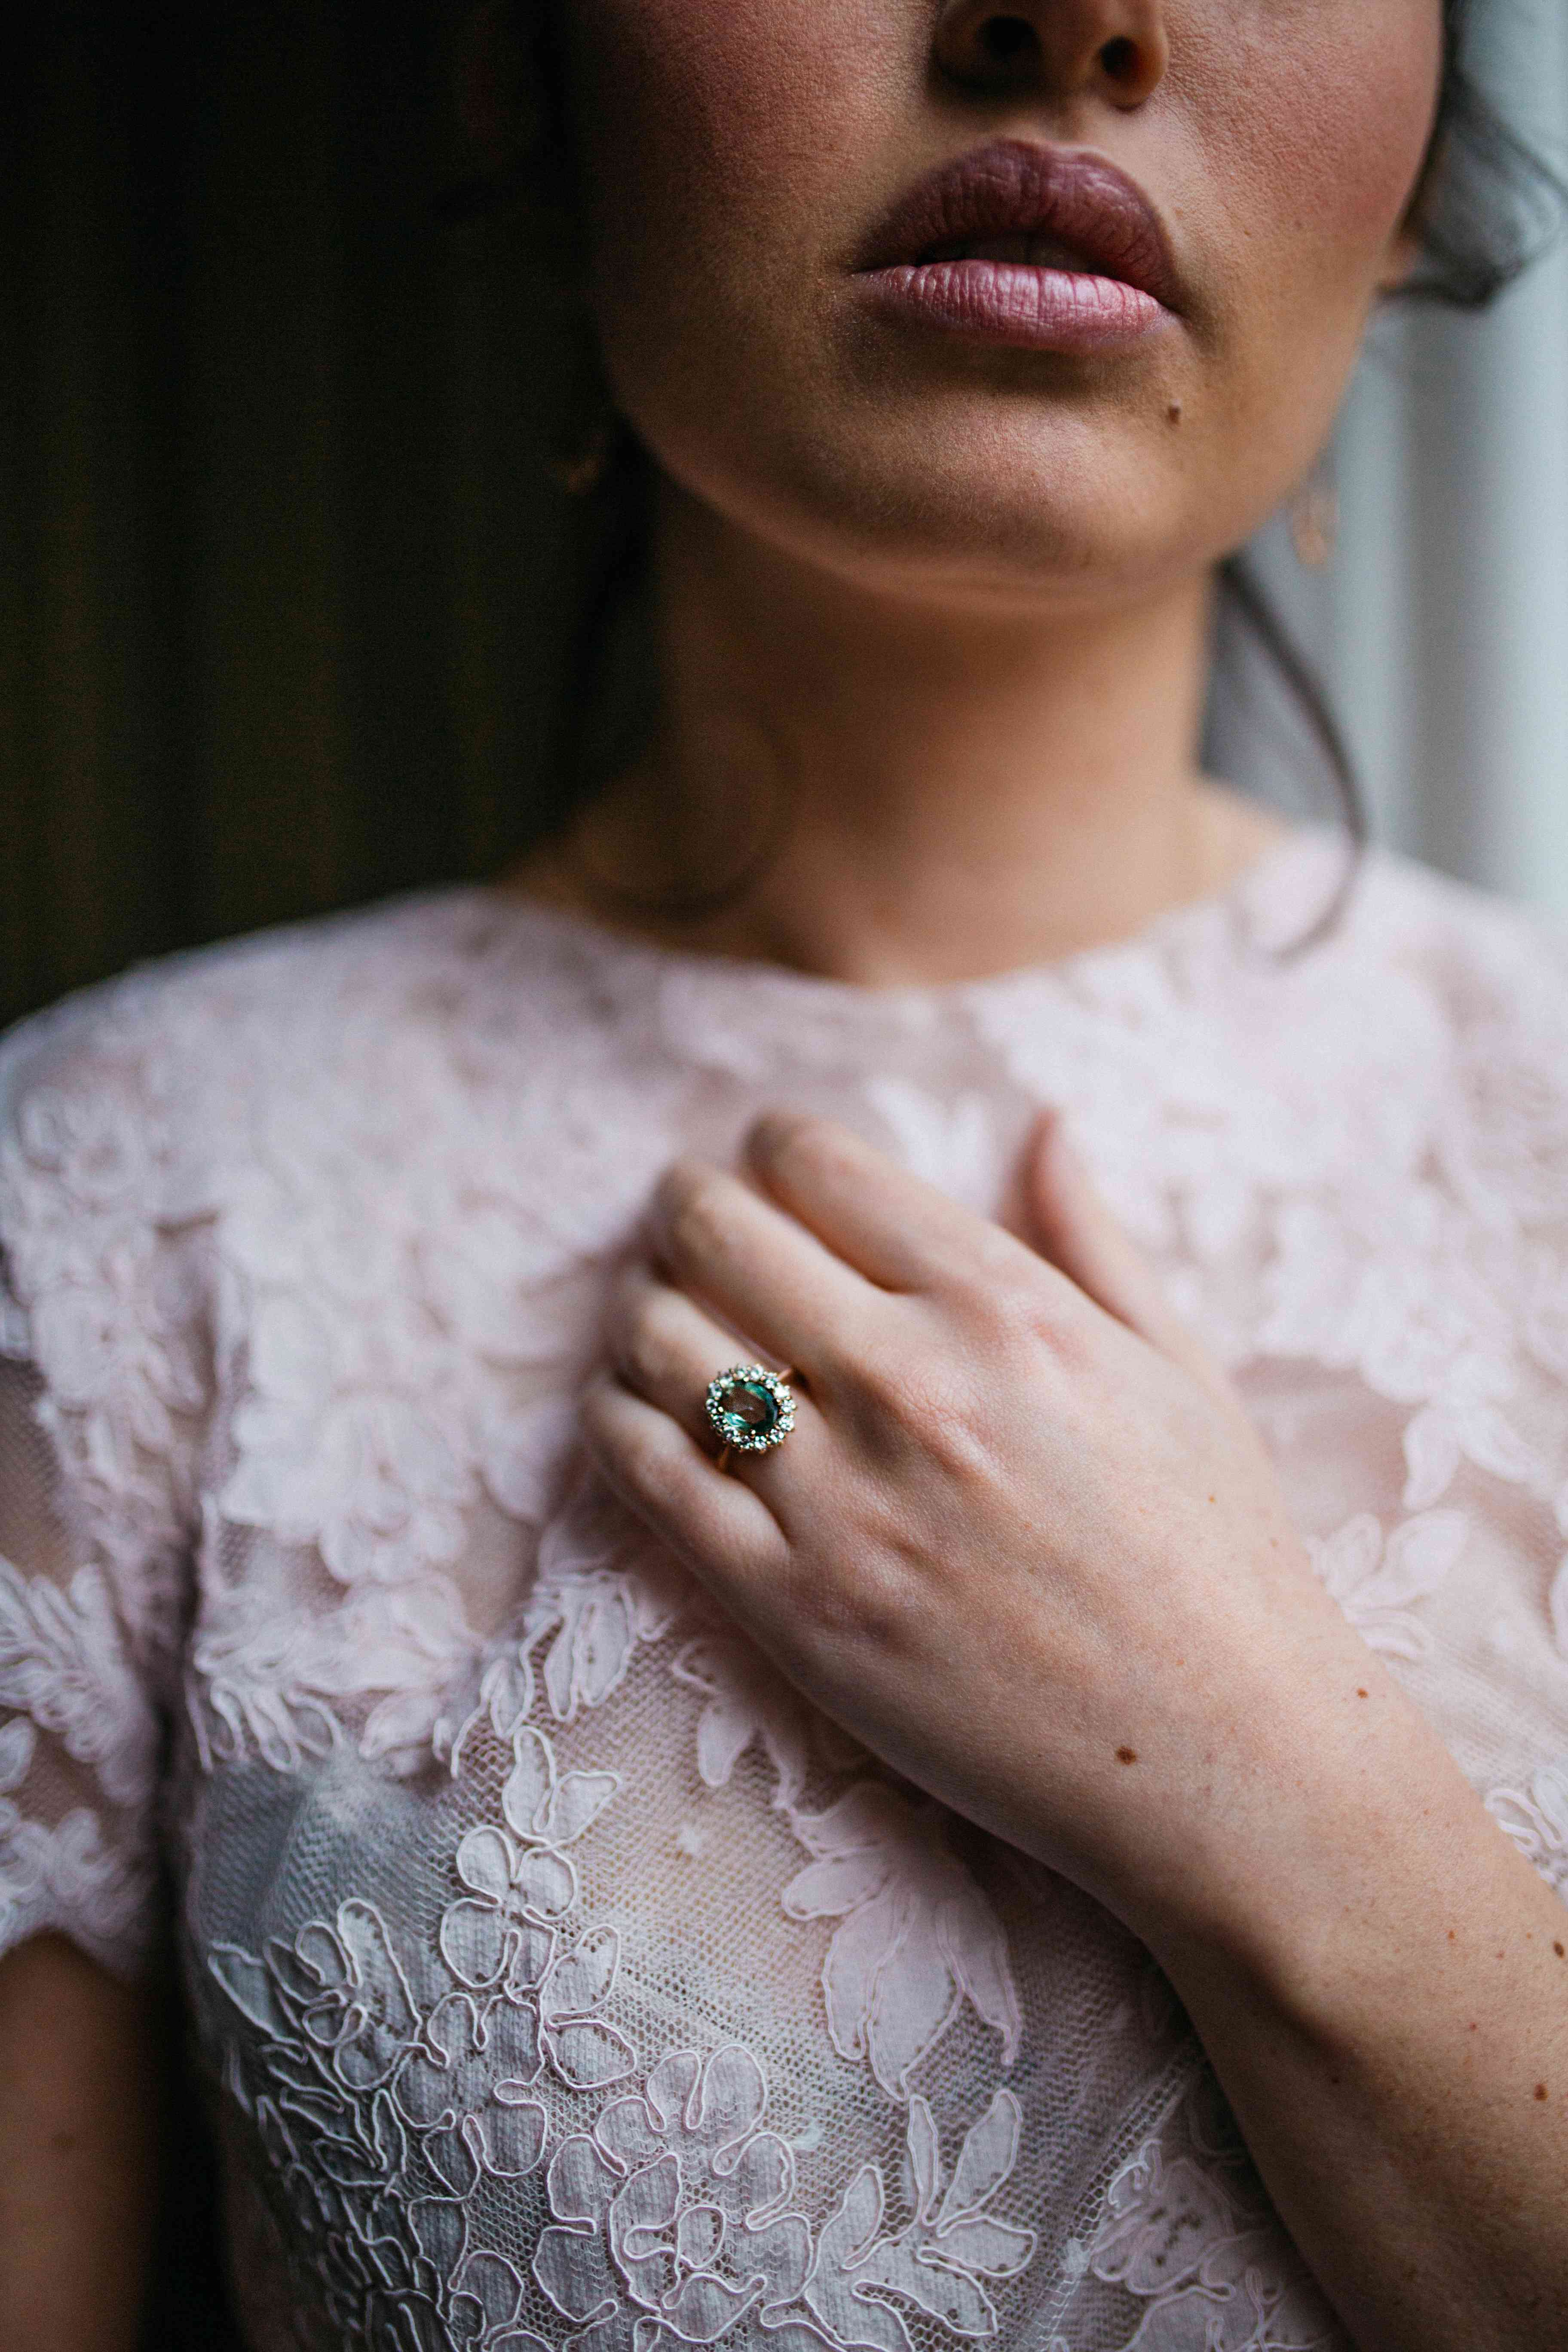 Woman with a vintage engagement ring